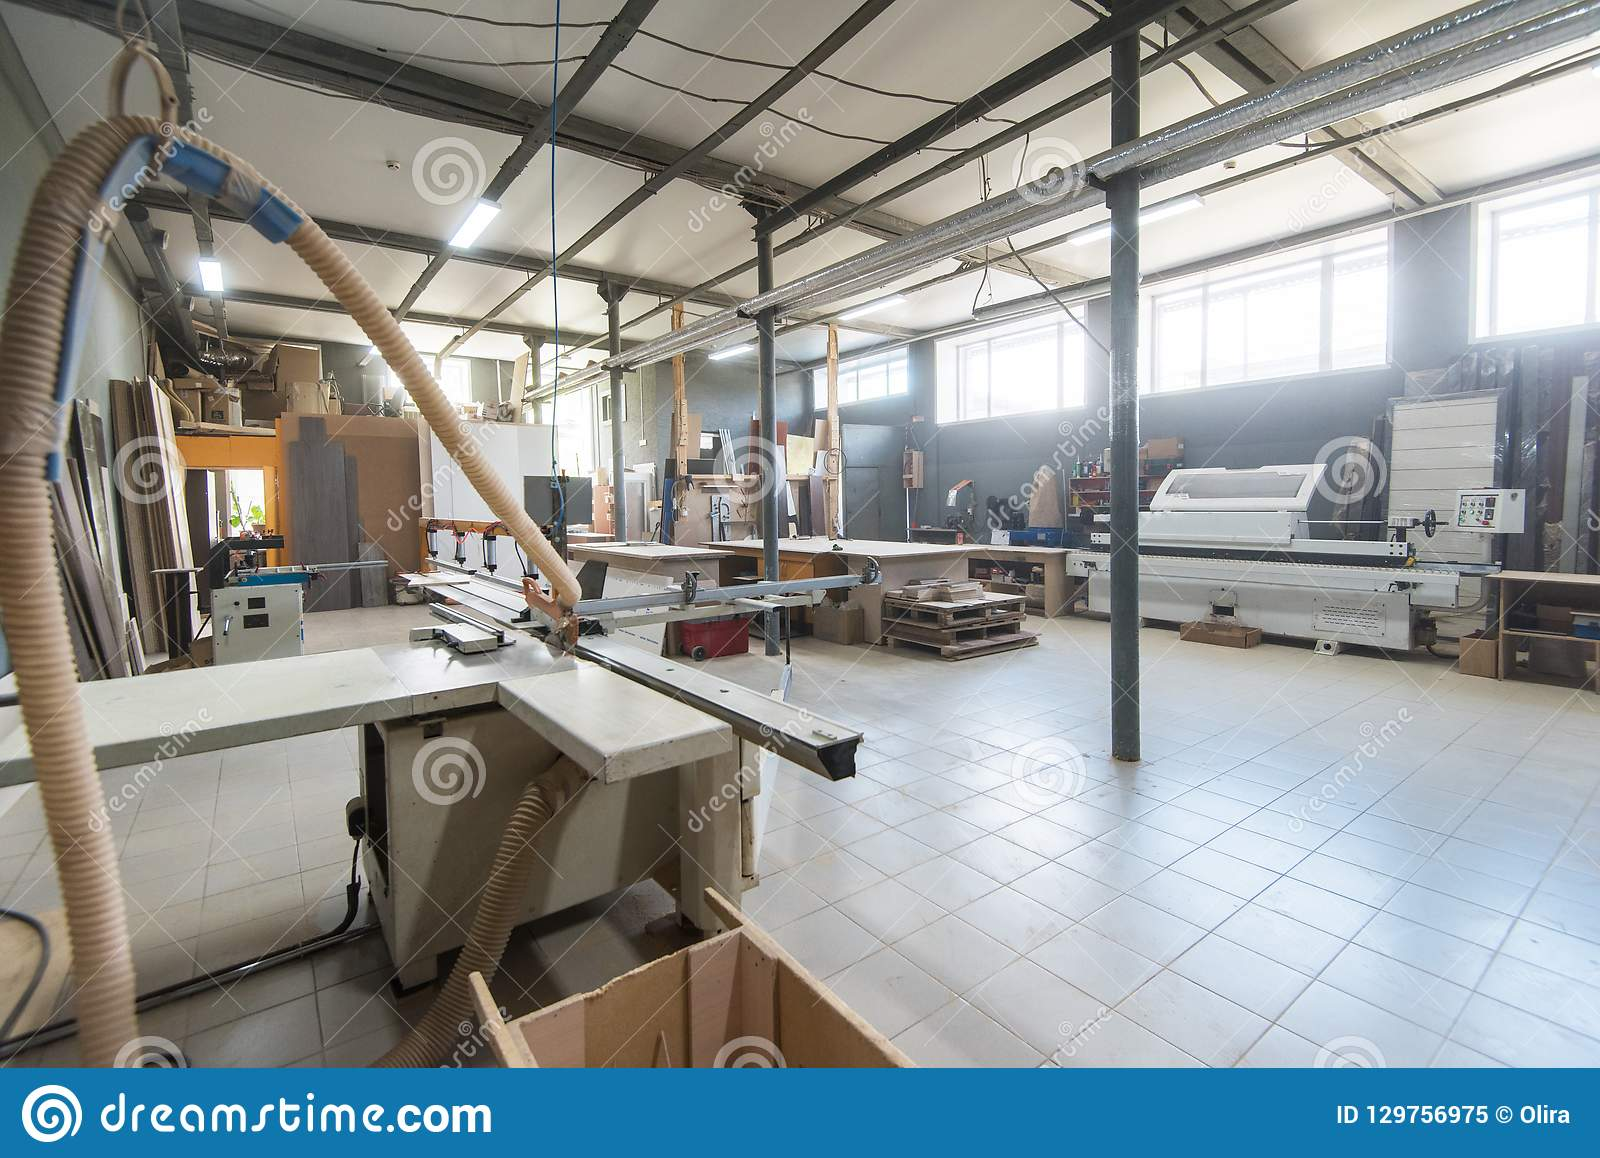 Production department at a furniture factory